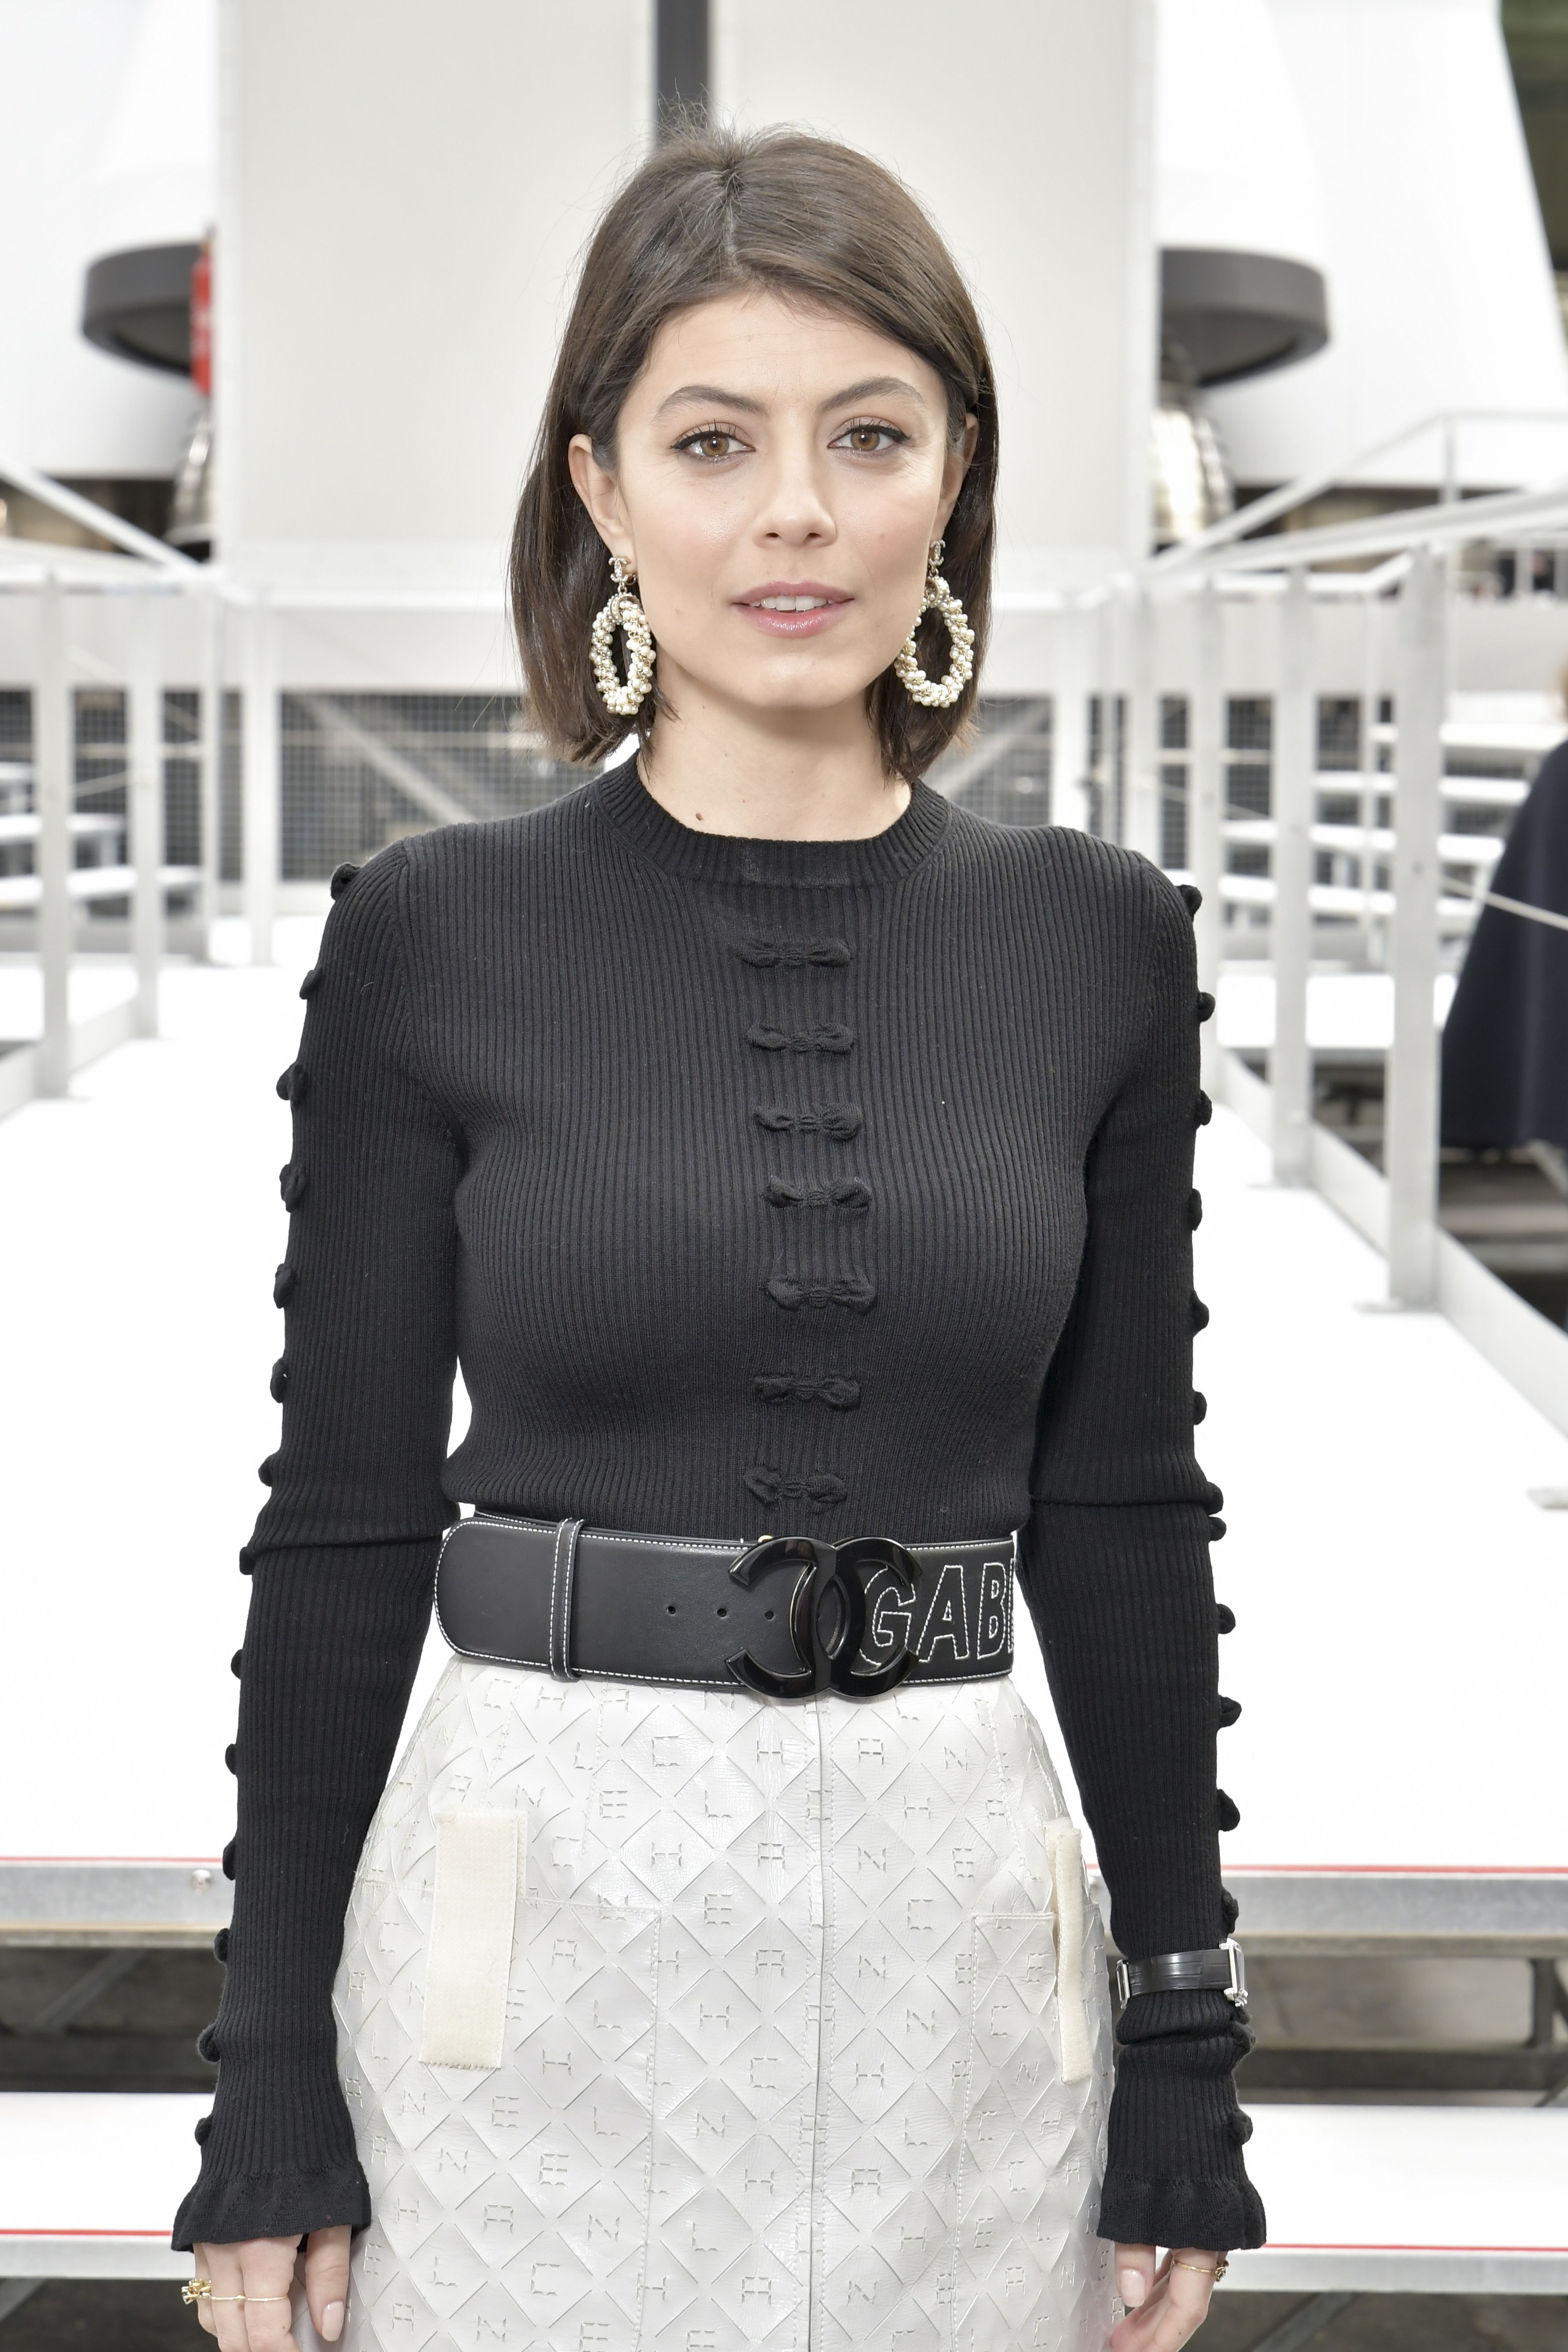 Alessandra Mastronardi  Special guests for the Chanel fashion show in the space - © Chanel